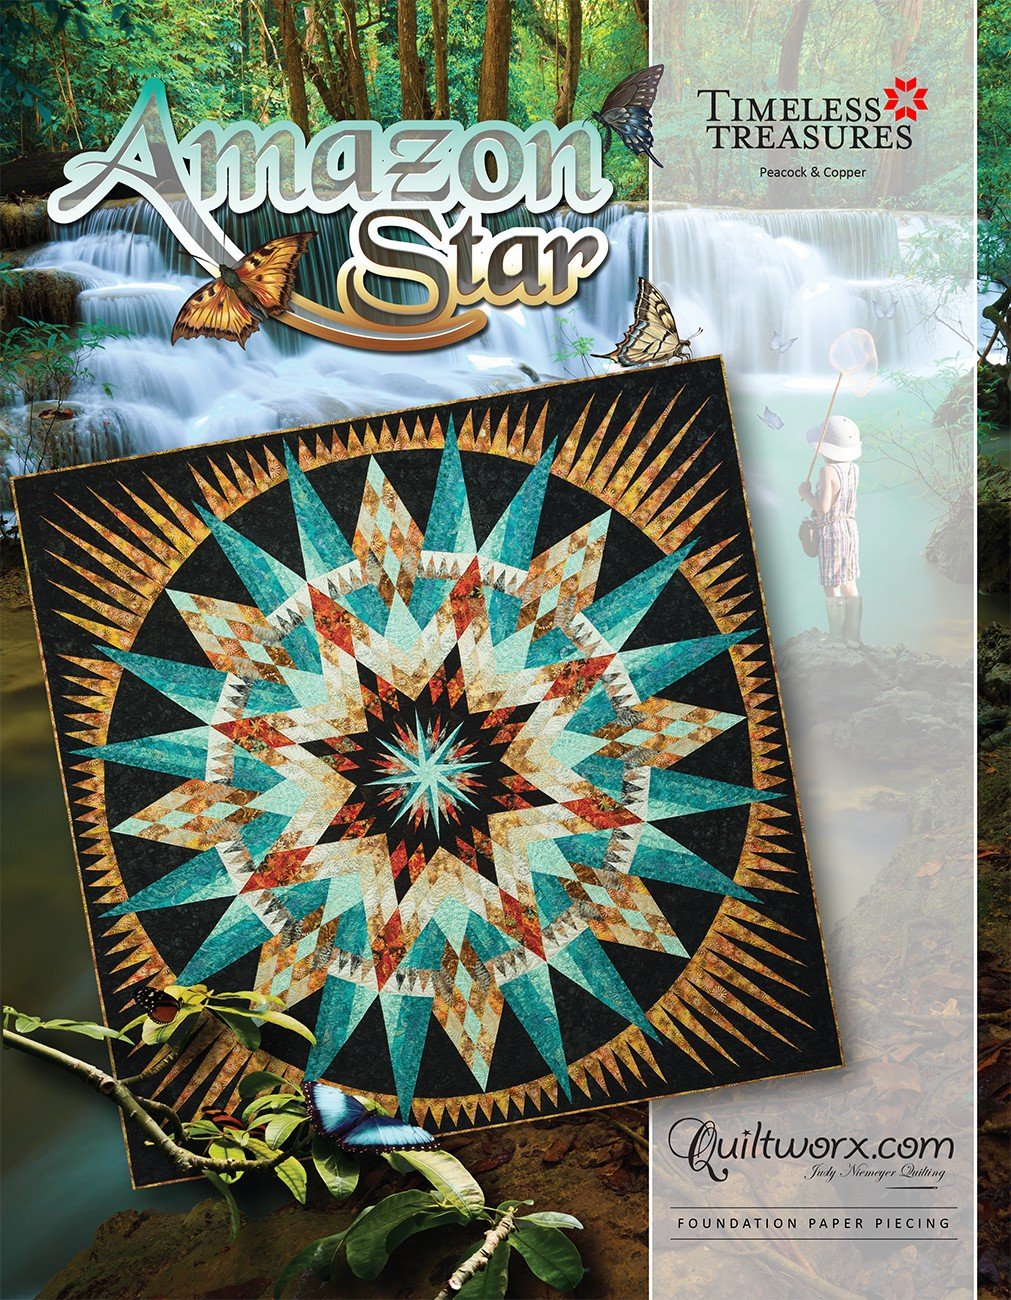 Amazon Star ~ EXPECTED DATE AUG 6/20 ~